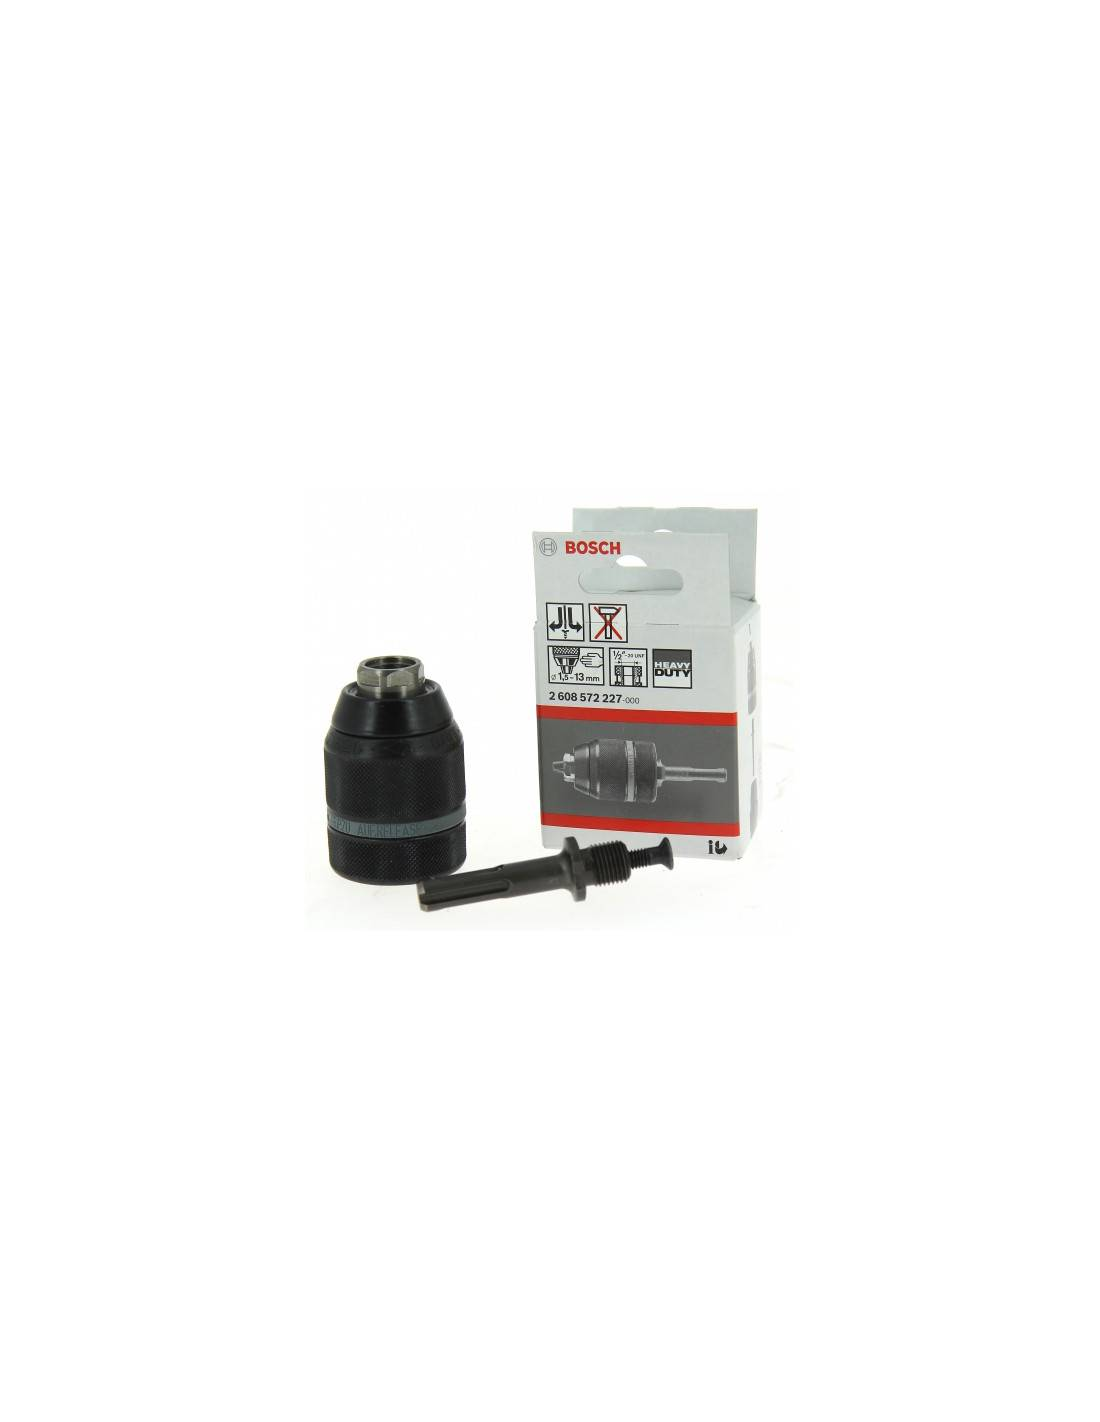 BOSCH - Mandrin à queue SDS+ automatique (1.5 - 13 mm) - 2608572227